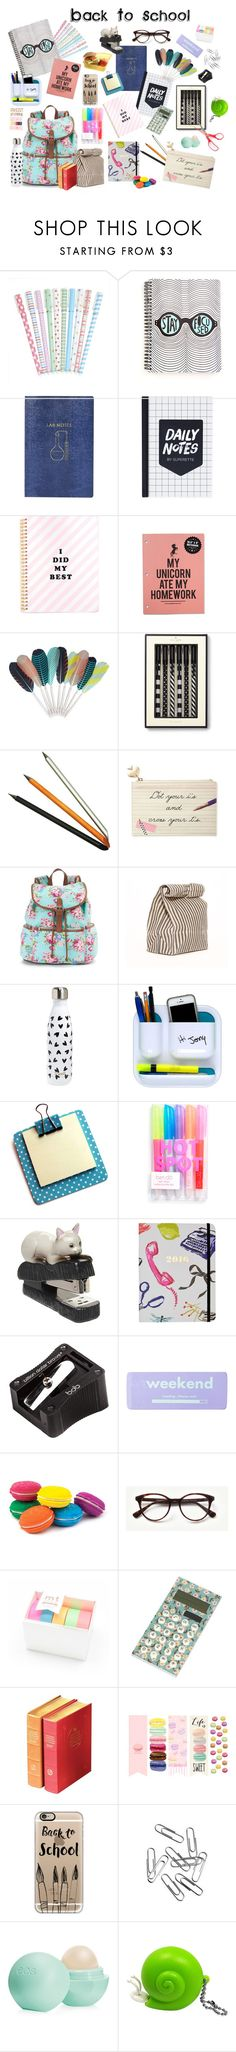 """""""School Supplies"""" by onewithbirds ❤ liked on Polyvore featuring interior, interiors, interior design, home, home decor, interior decorating, Topshop, HAY, Kate Spade and Jac Zagoory Designs"""